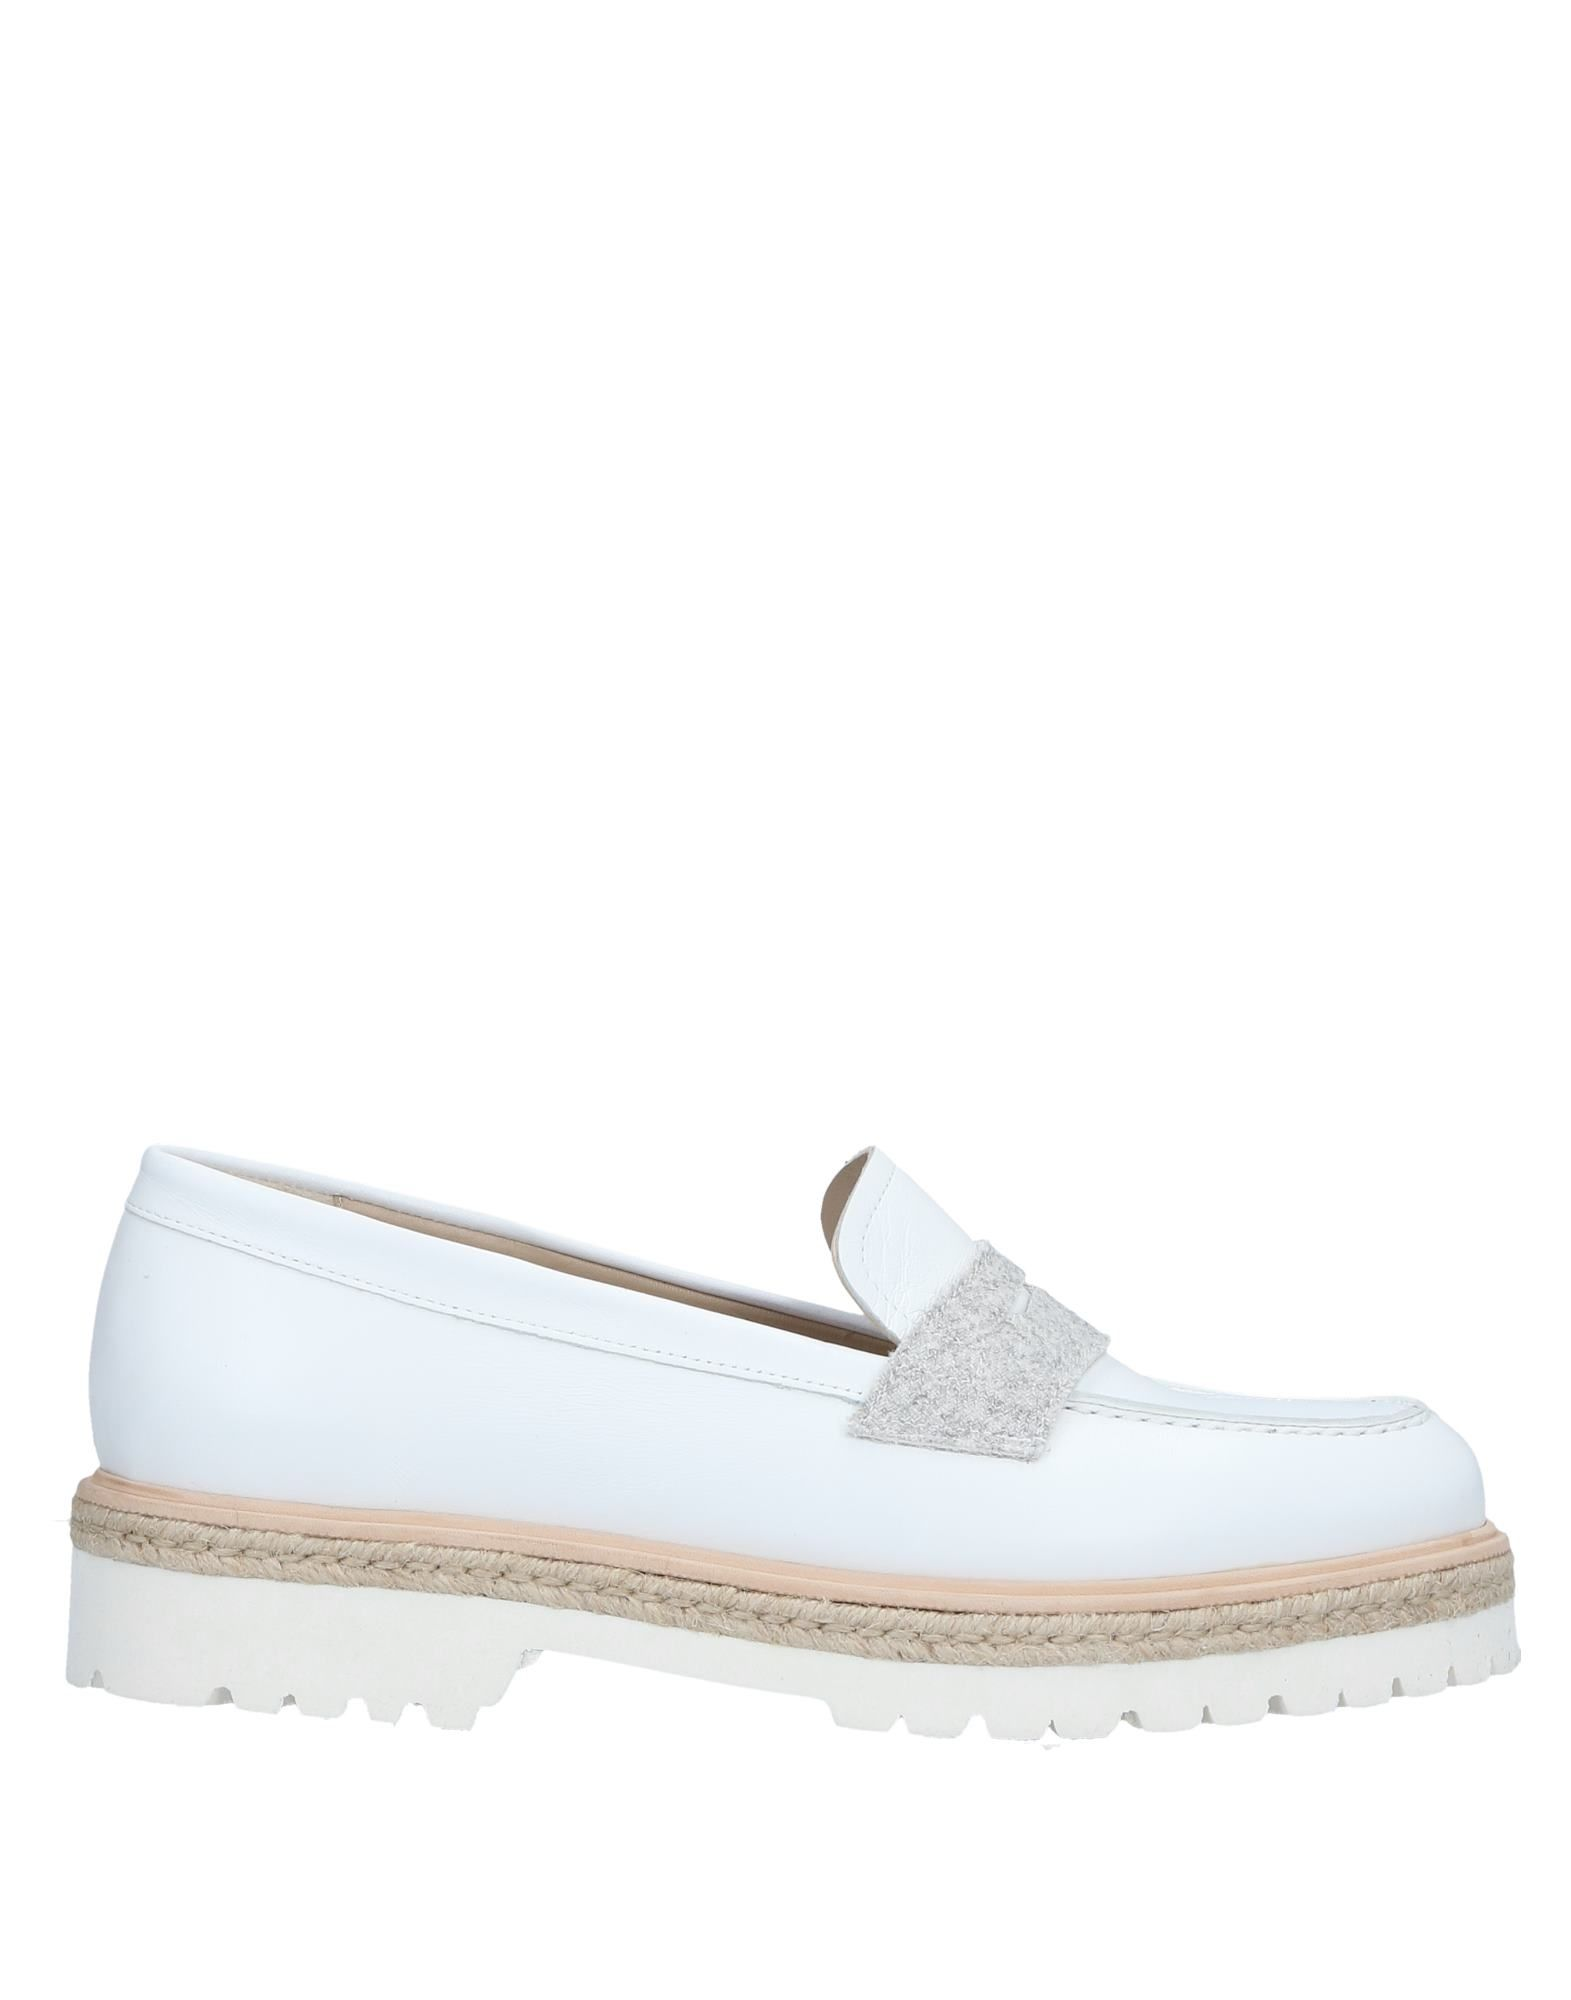 LOLO Loafers in White